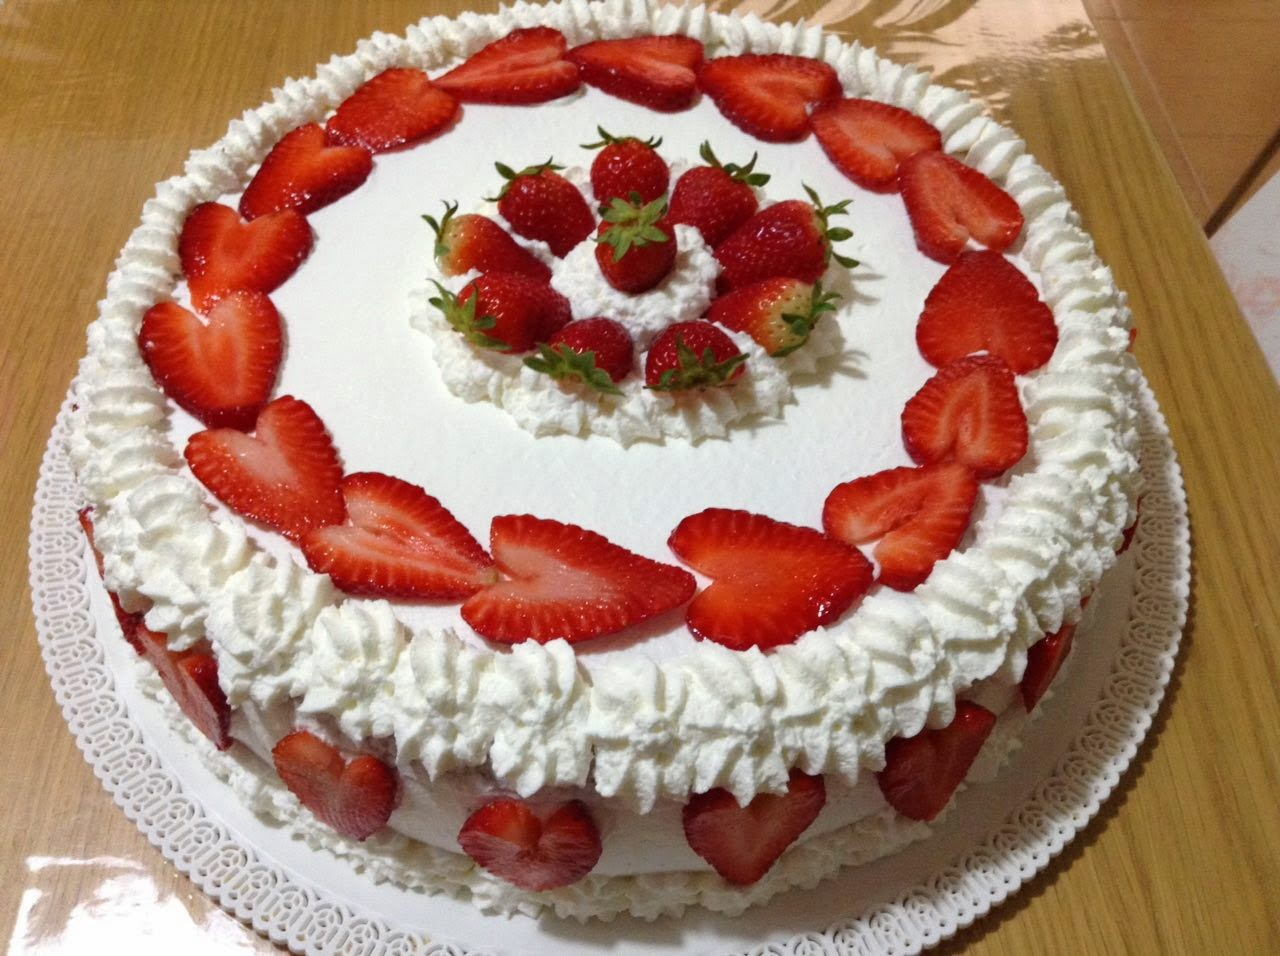 La cucina di rosa torta alle fragole for Decorazione torte con smarties